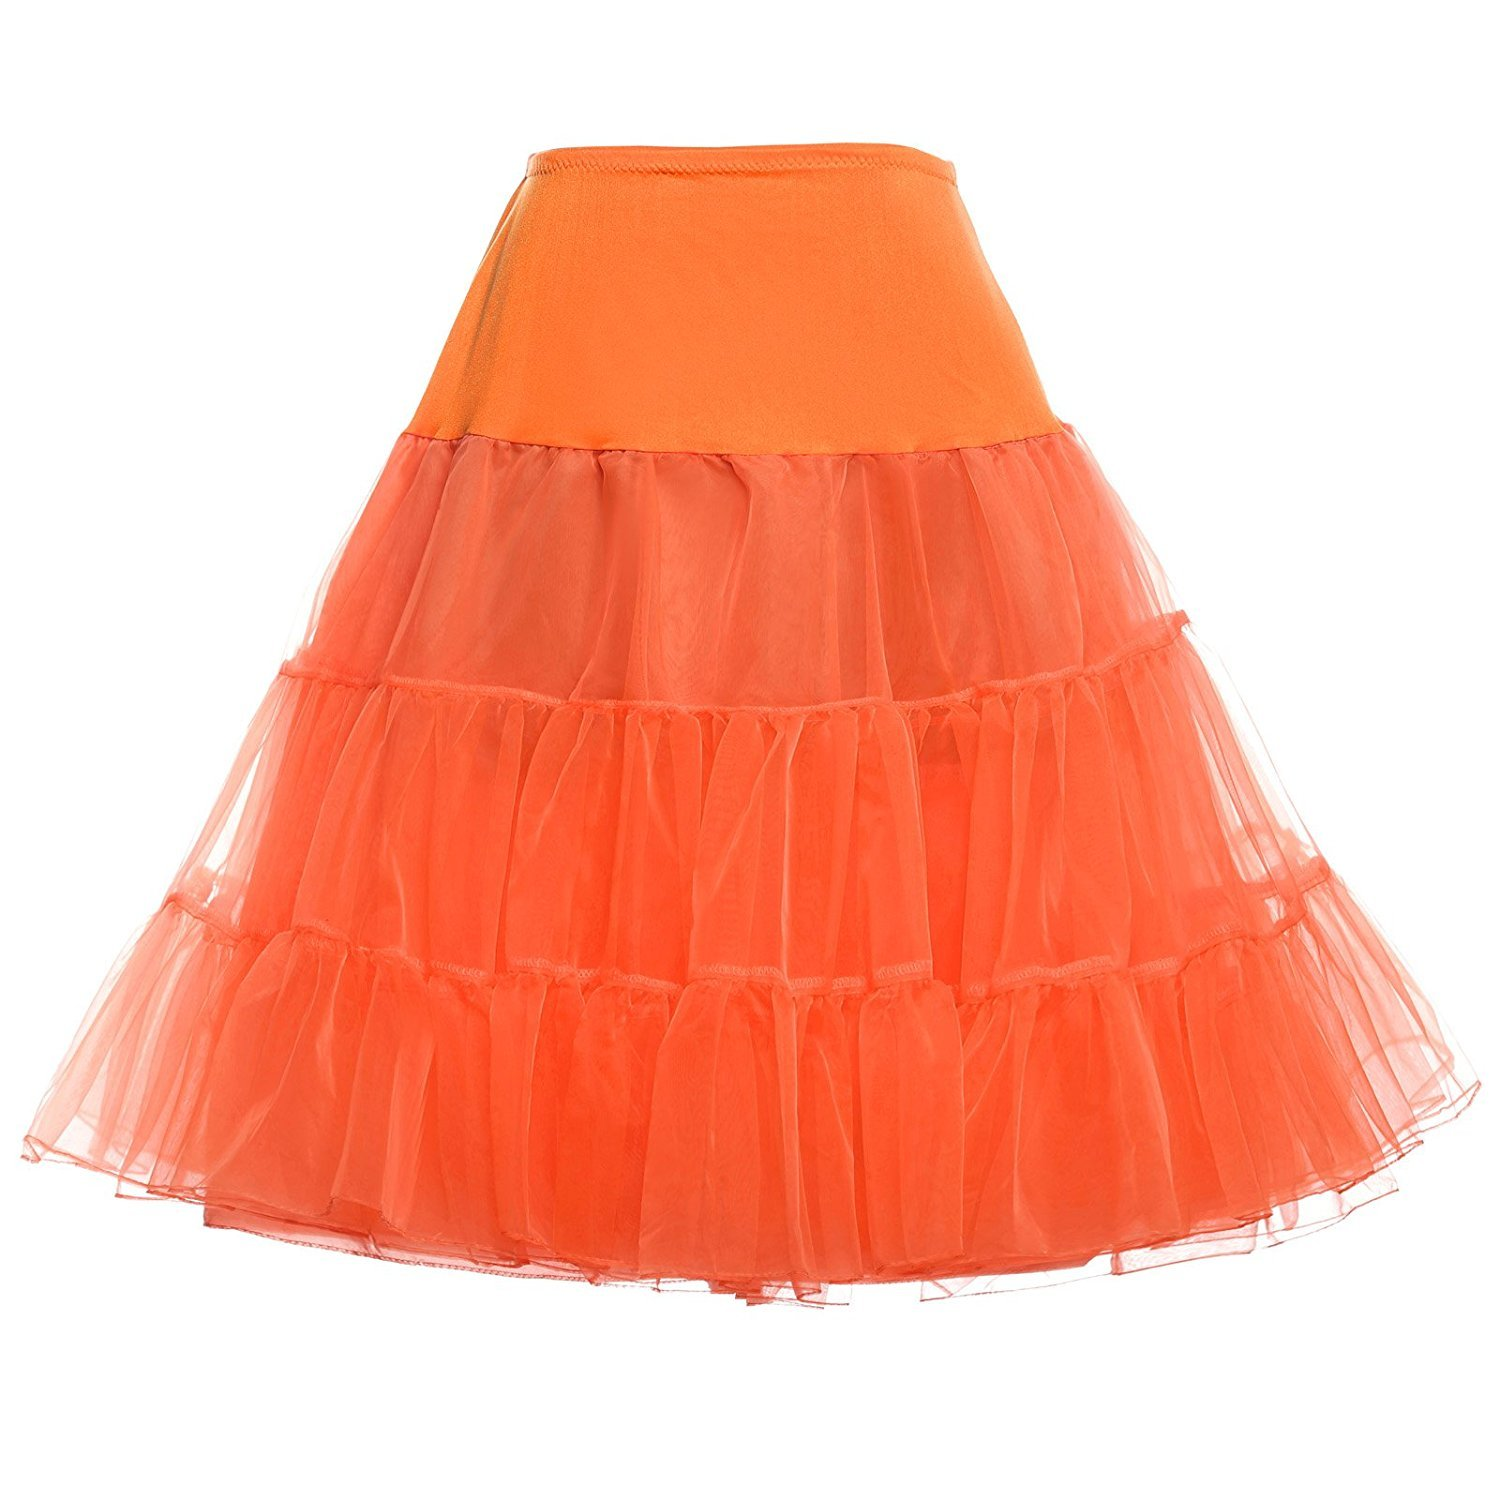 Wishopping Women 1950s Rockabilly Tutu Skirt Crinoline Petticoat P18 Orange Size S WP18OG-S